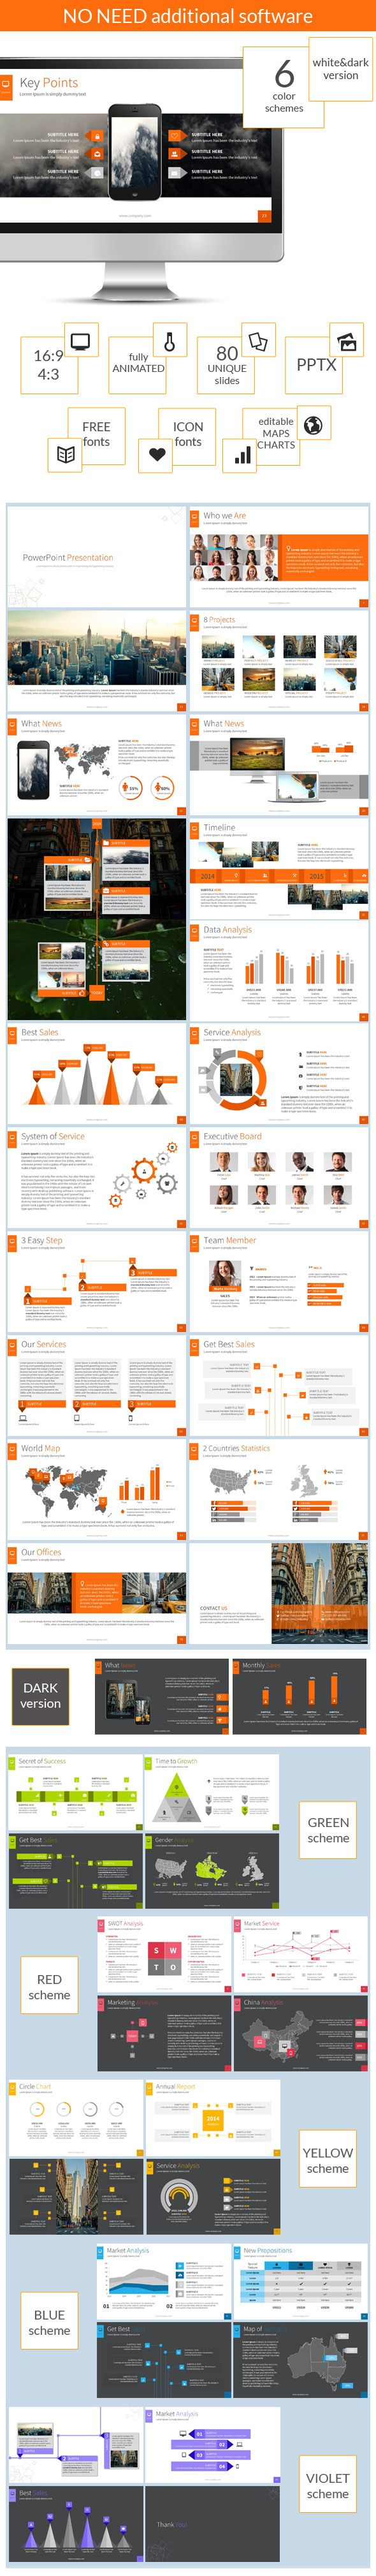 PowerPoint Presentation http://graphicriver.net/item/powerpoint-presentation-/8795773